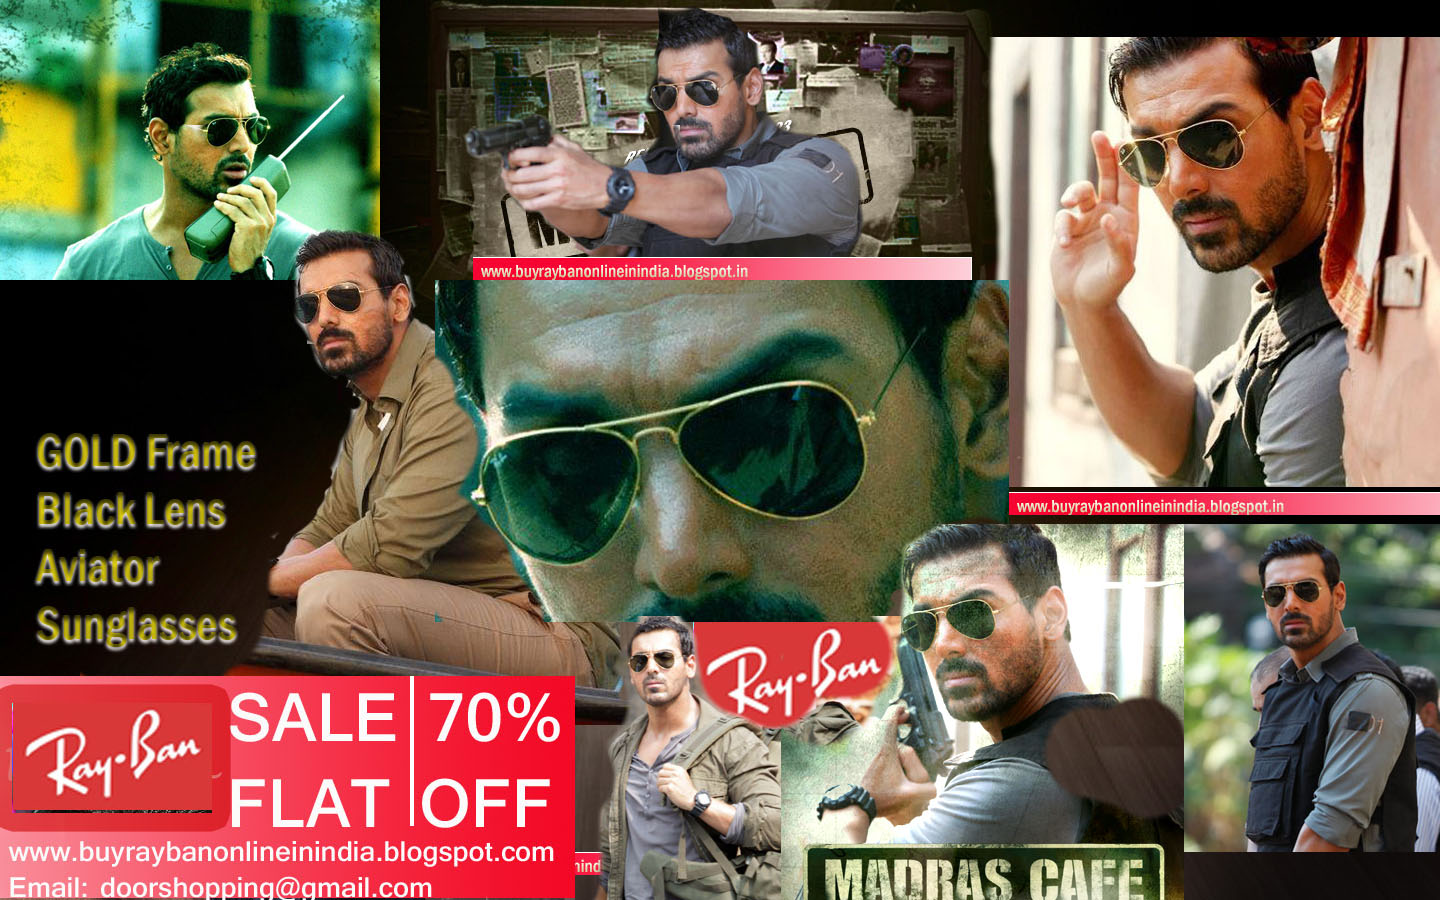 0614e9f7aed Rs999 John Abraham Golden Frame Black Lens Aviator Sunglasses in Madras Cafe